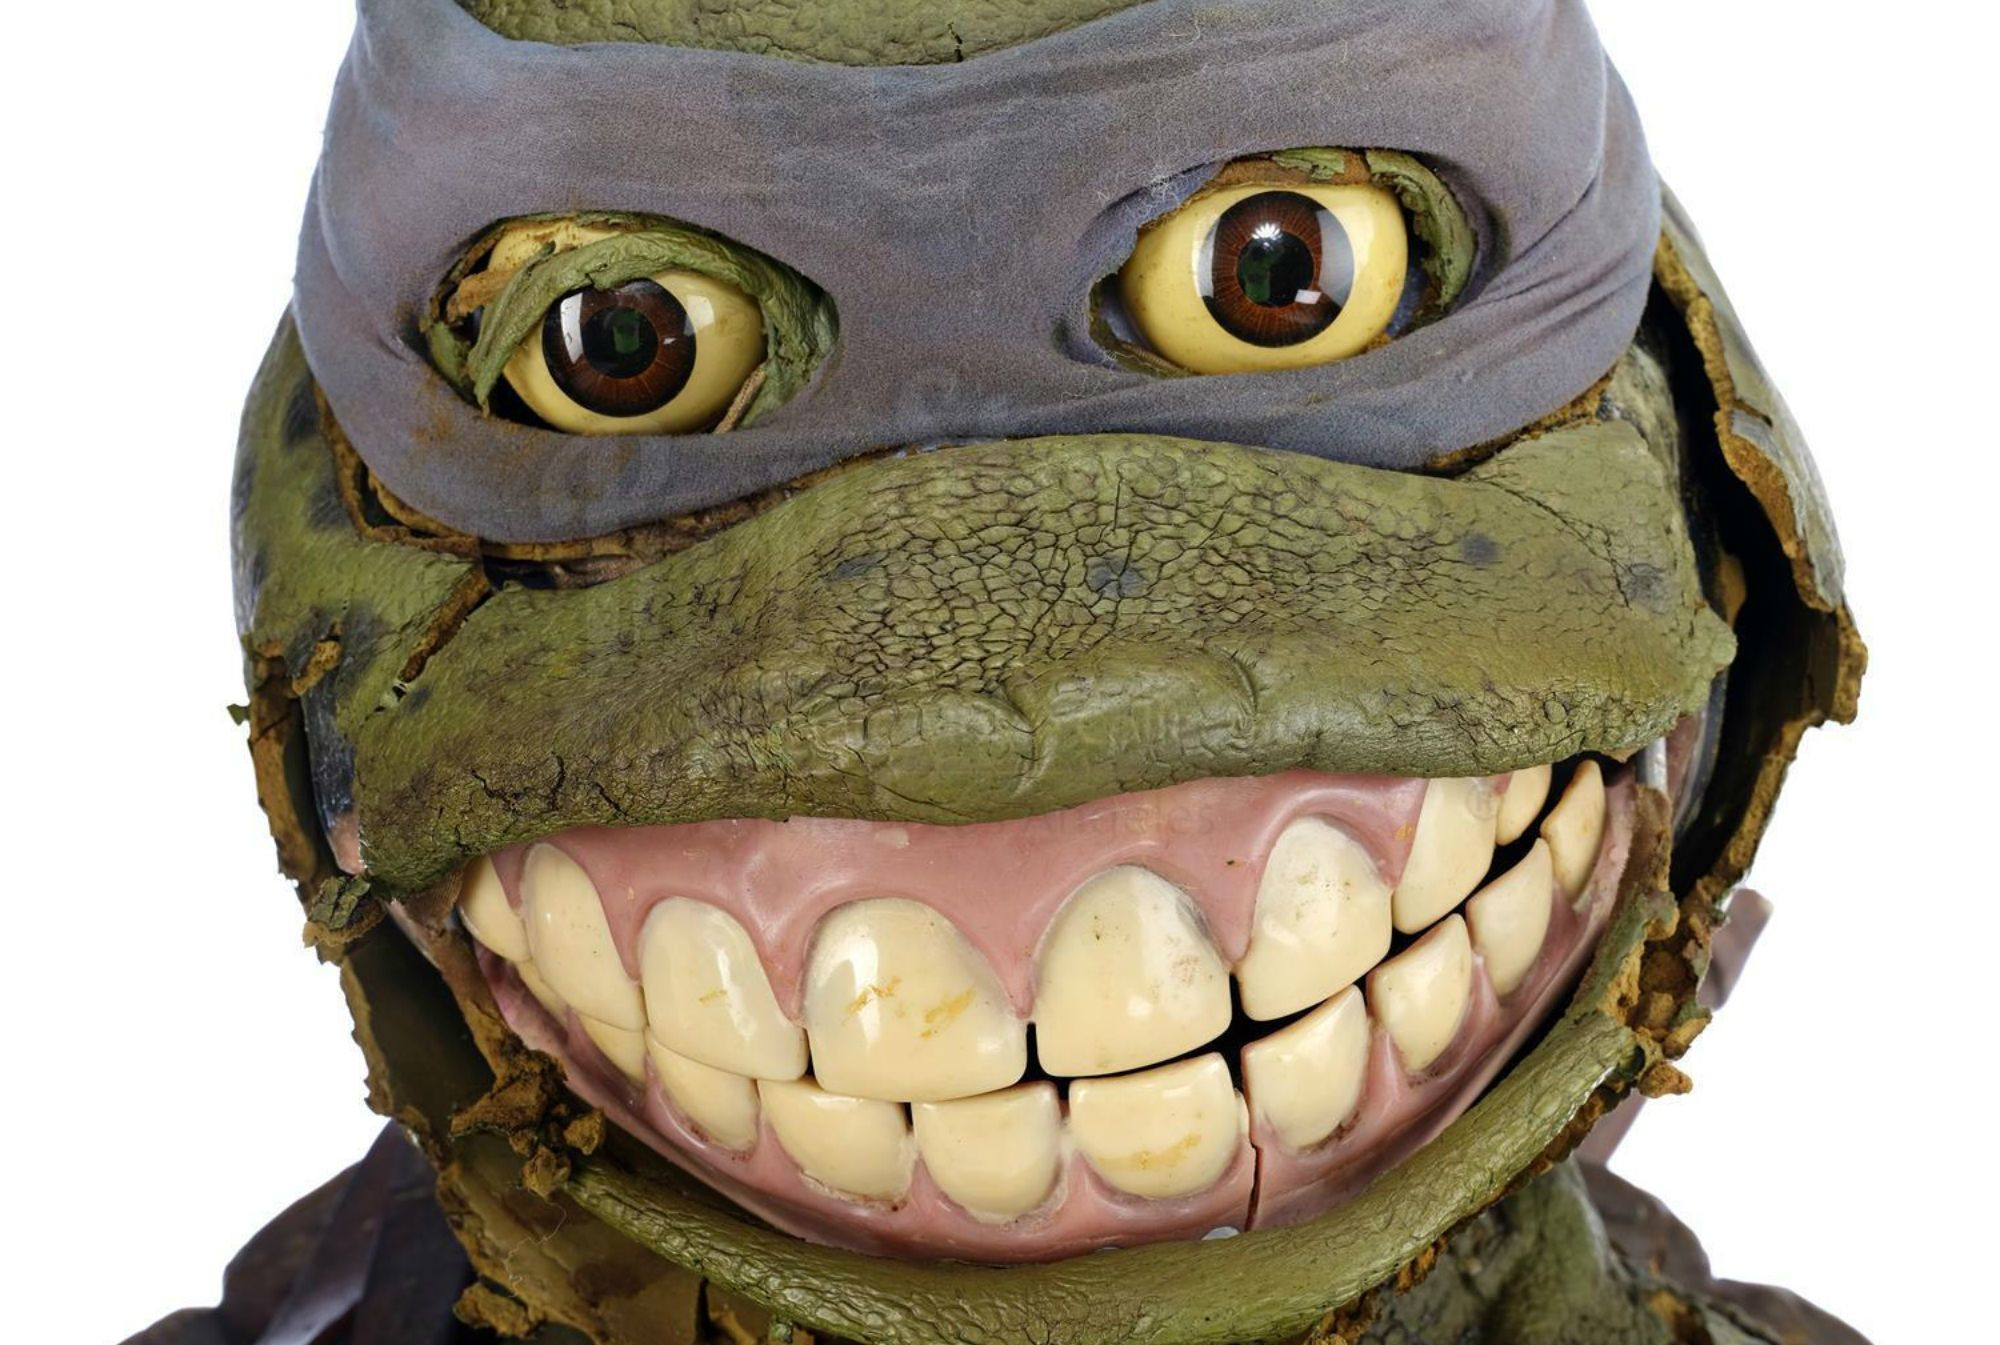 A Rotting Costume From Teenage Mutant Ninja Turtles Iii Fails To Find A Buyer At Auction Mental Floss